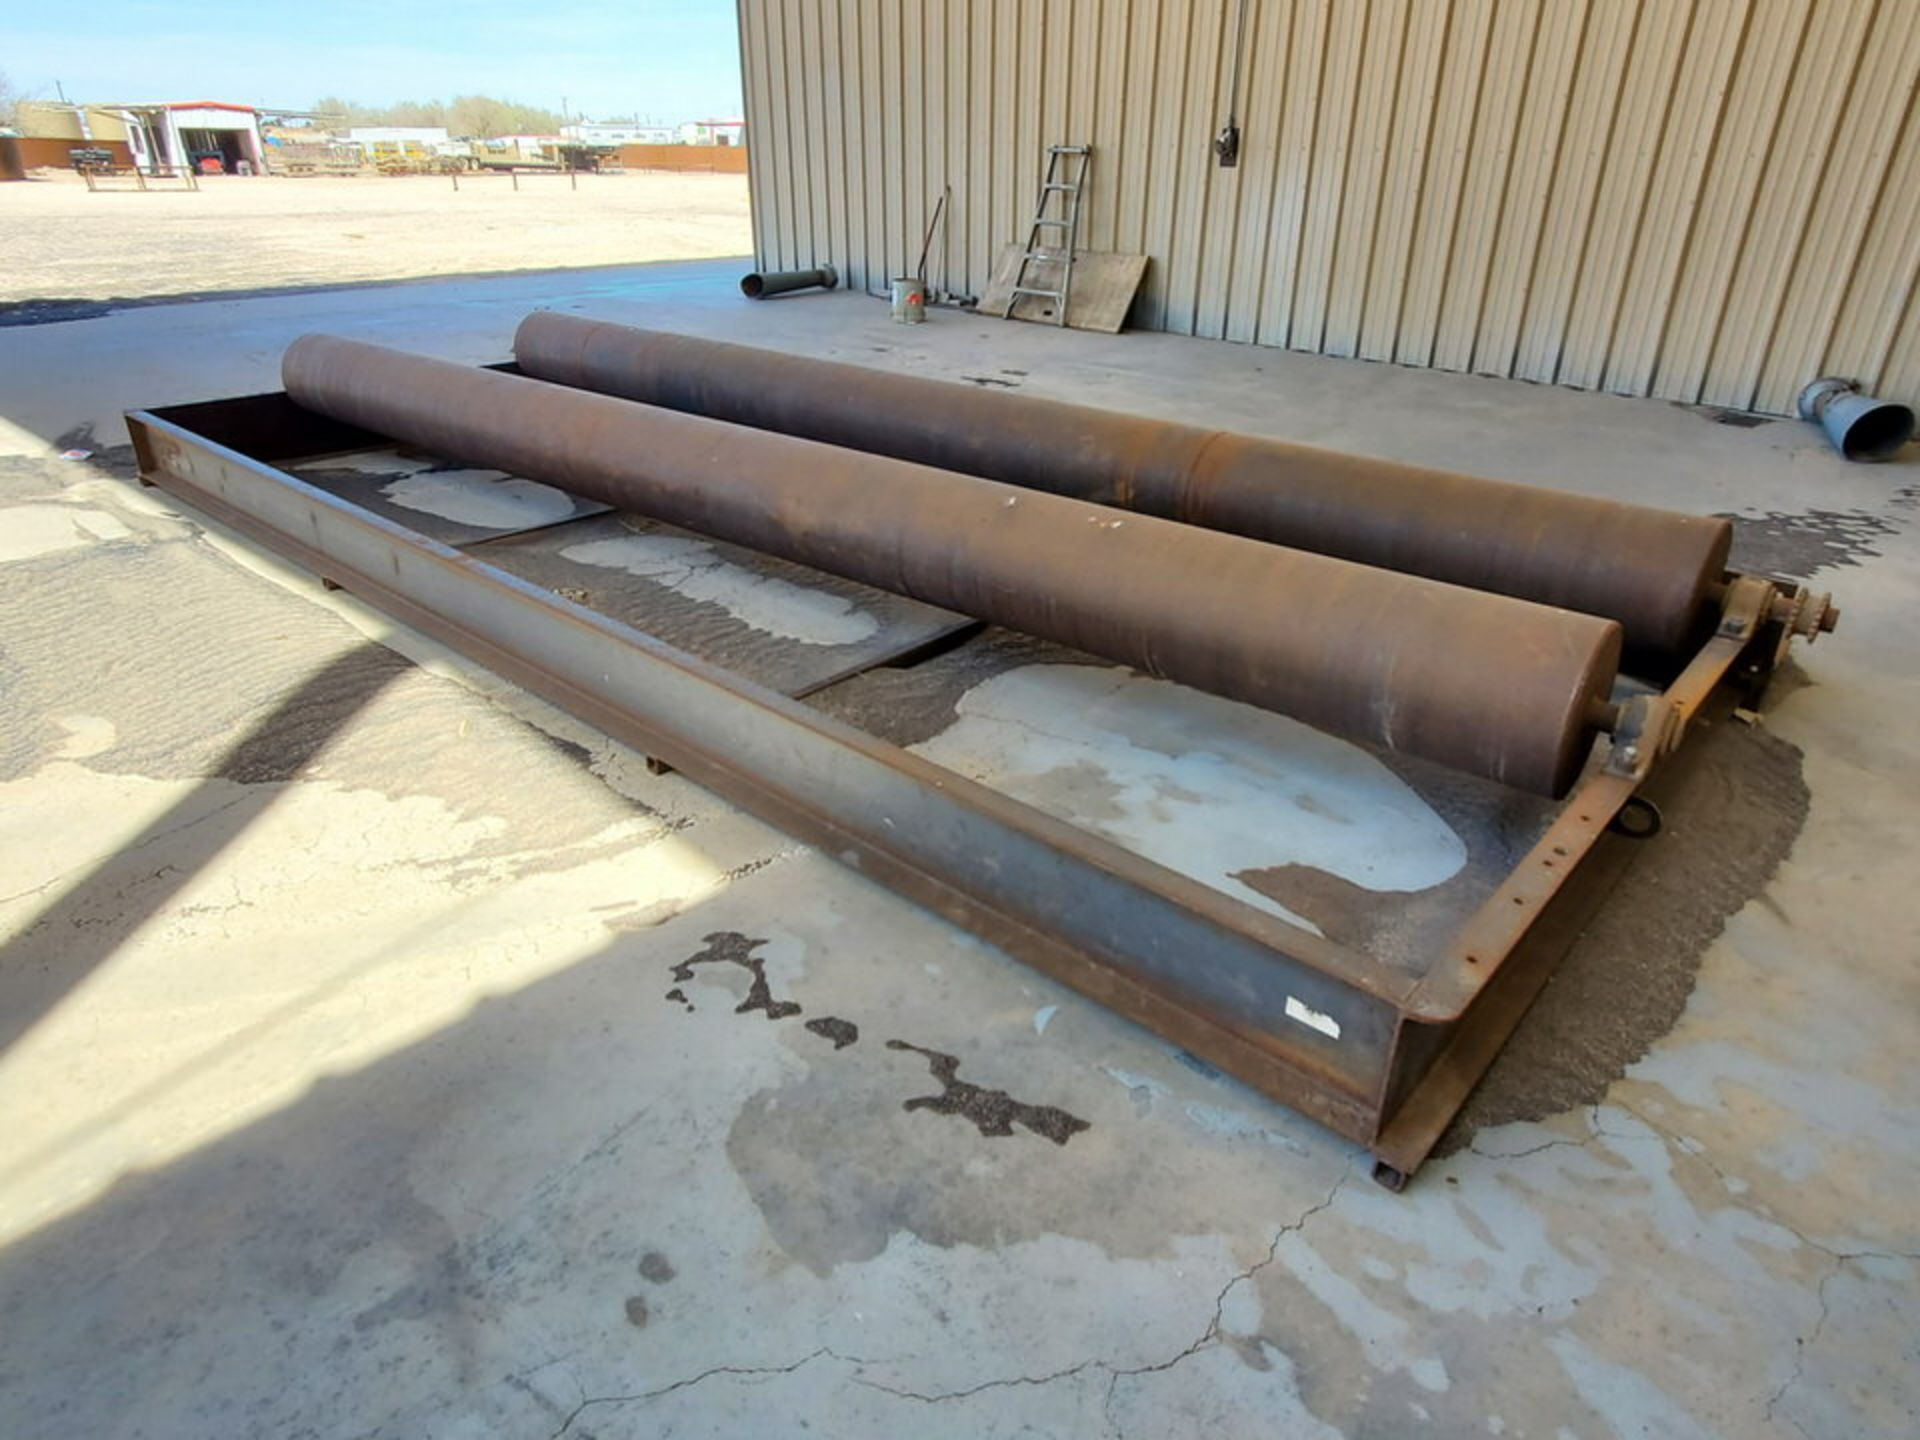 """Turn Roll 8' x 20'6"""", 16"""" O.D. Rolls, 1' Base; Overall Dims: 9'8""""W - Image 7 of 8"""